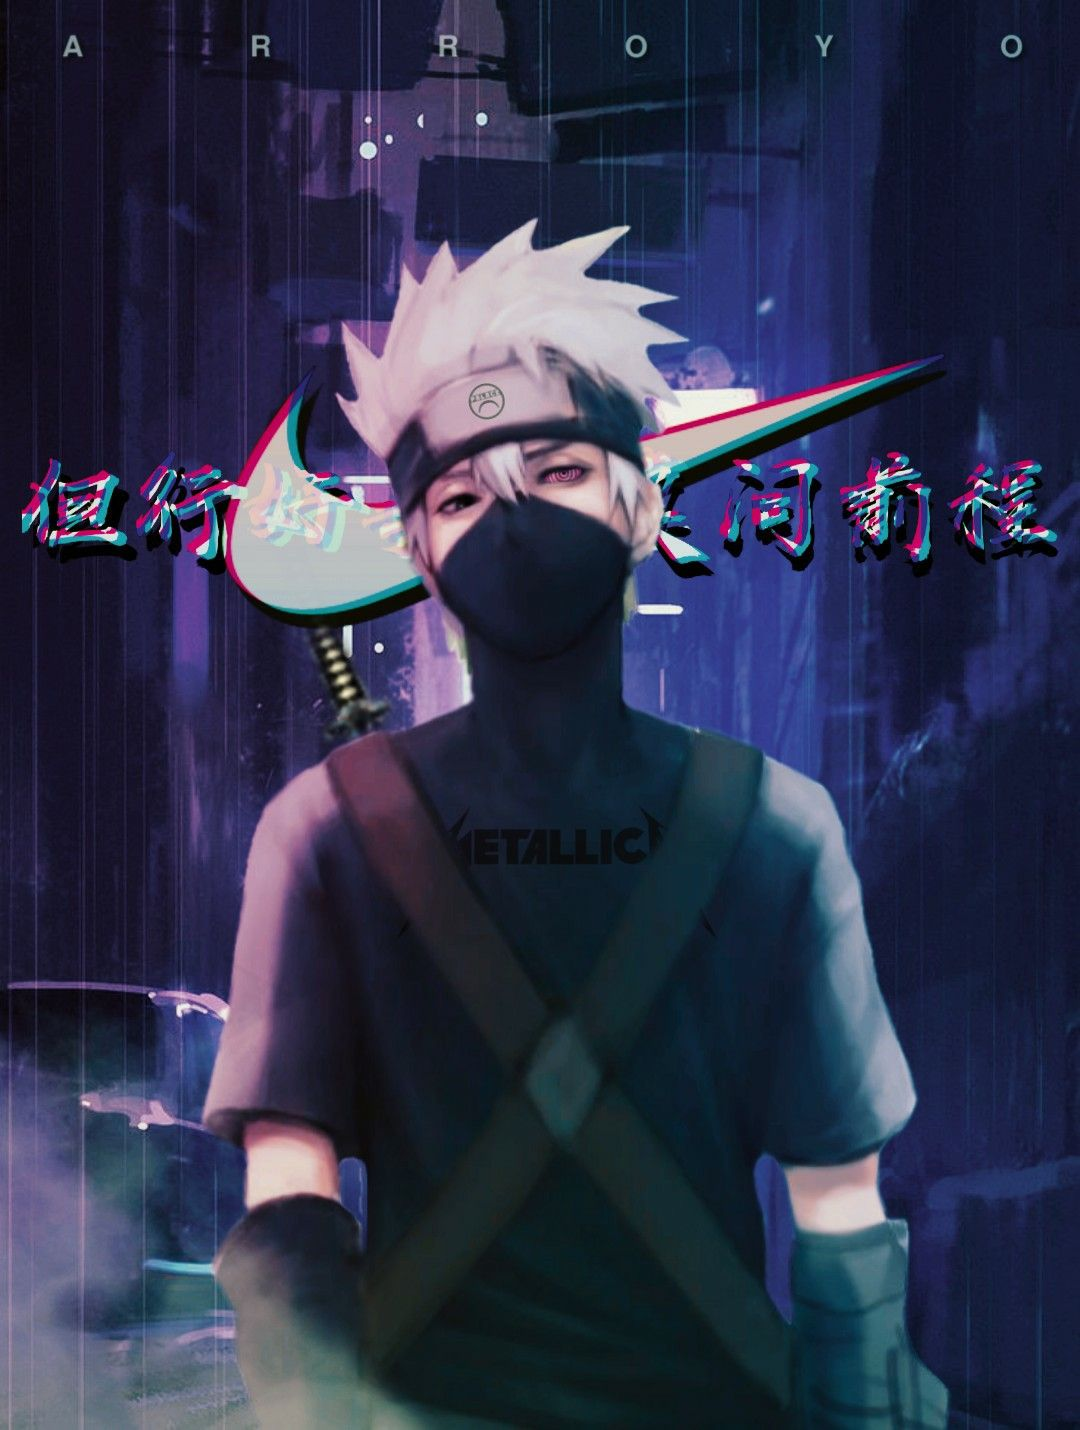 Wallpaper Kakashi Aesthetic